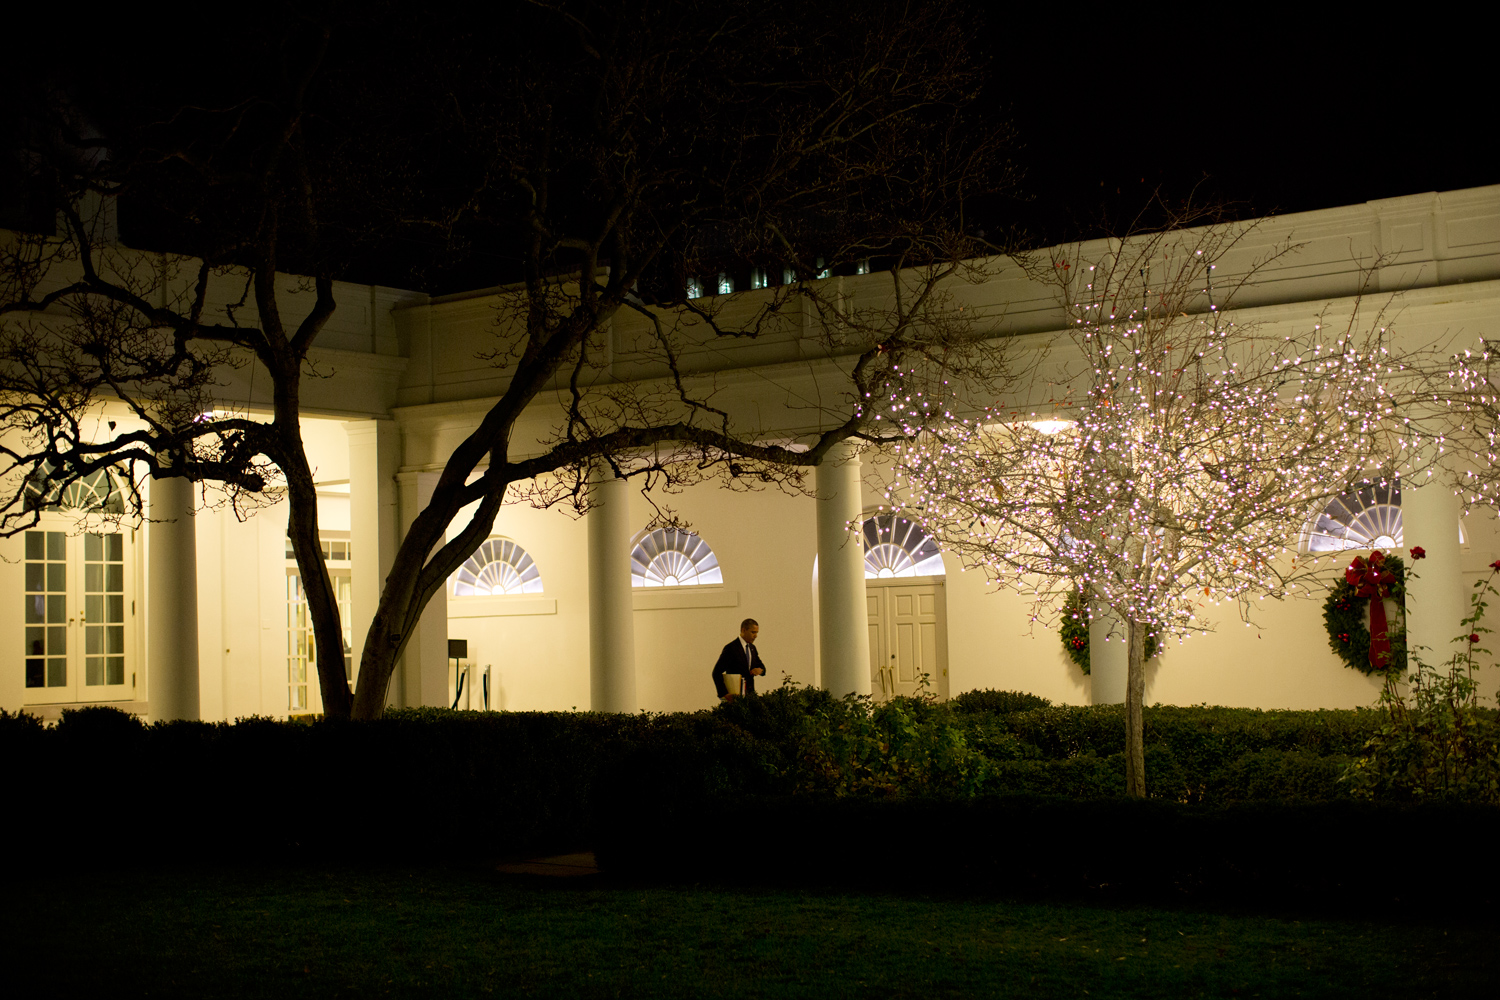 At the end of the day, with many folders and briefings in hand, Obama heads along the Colonnade, adorned with Christmas decorations, to the Residence of the White House.